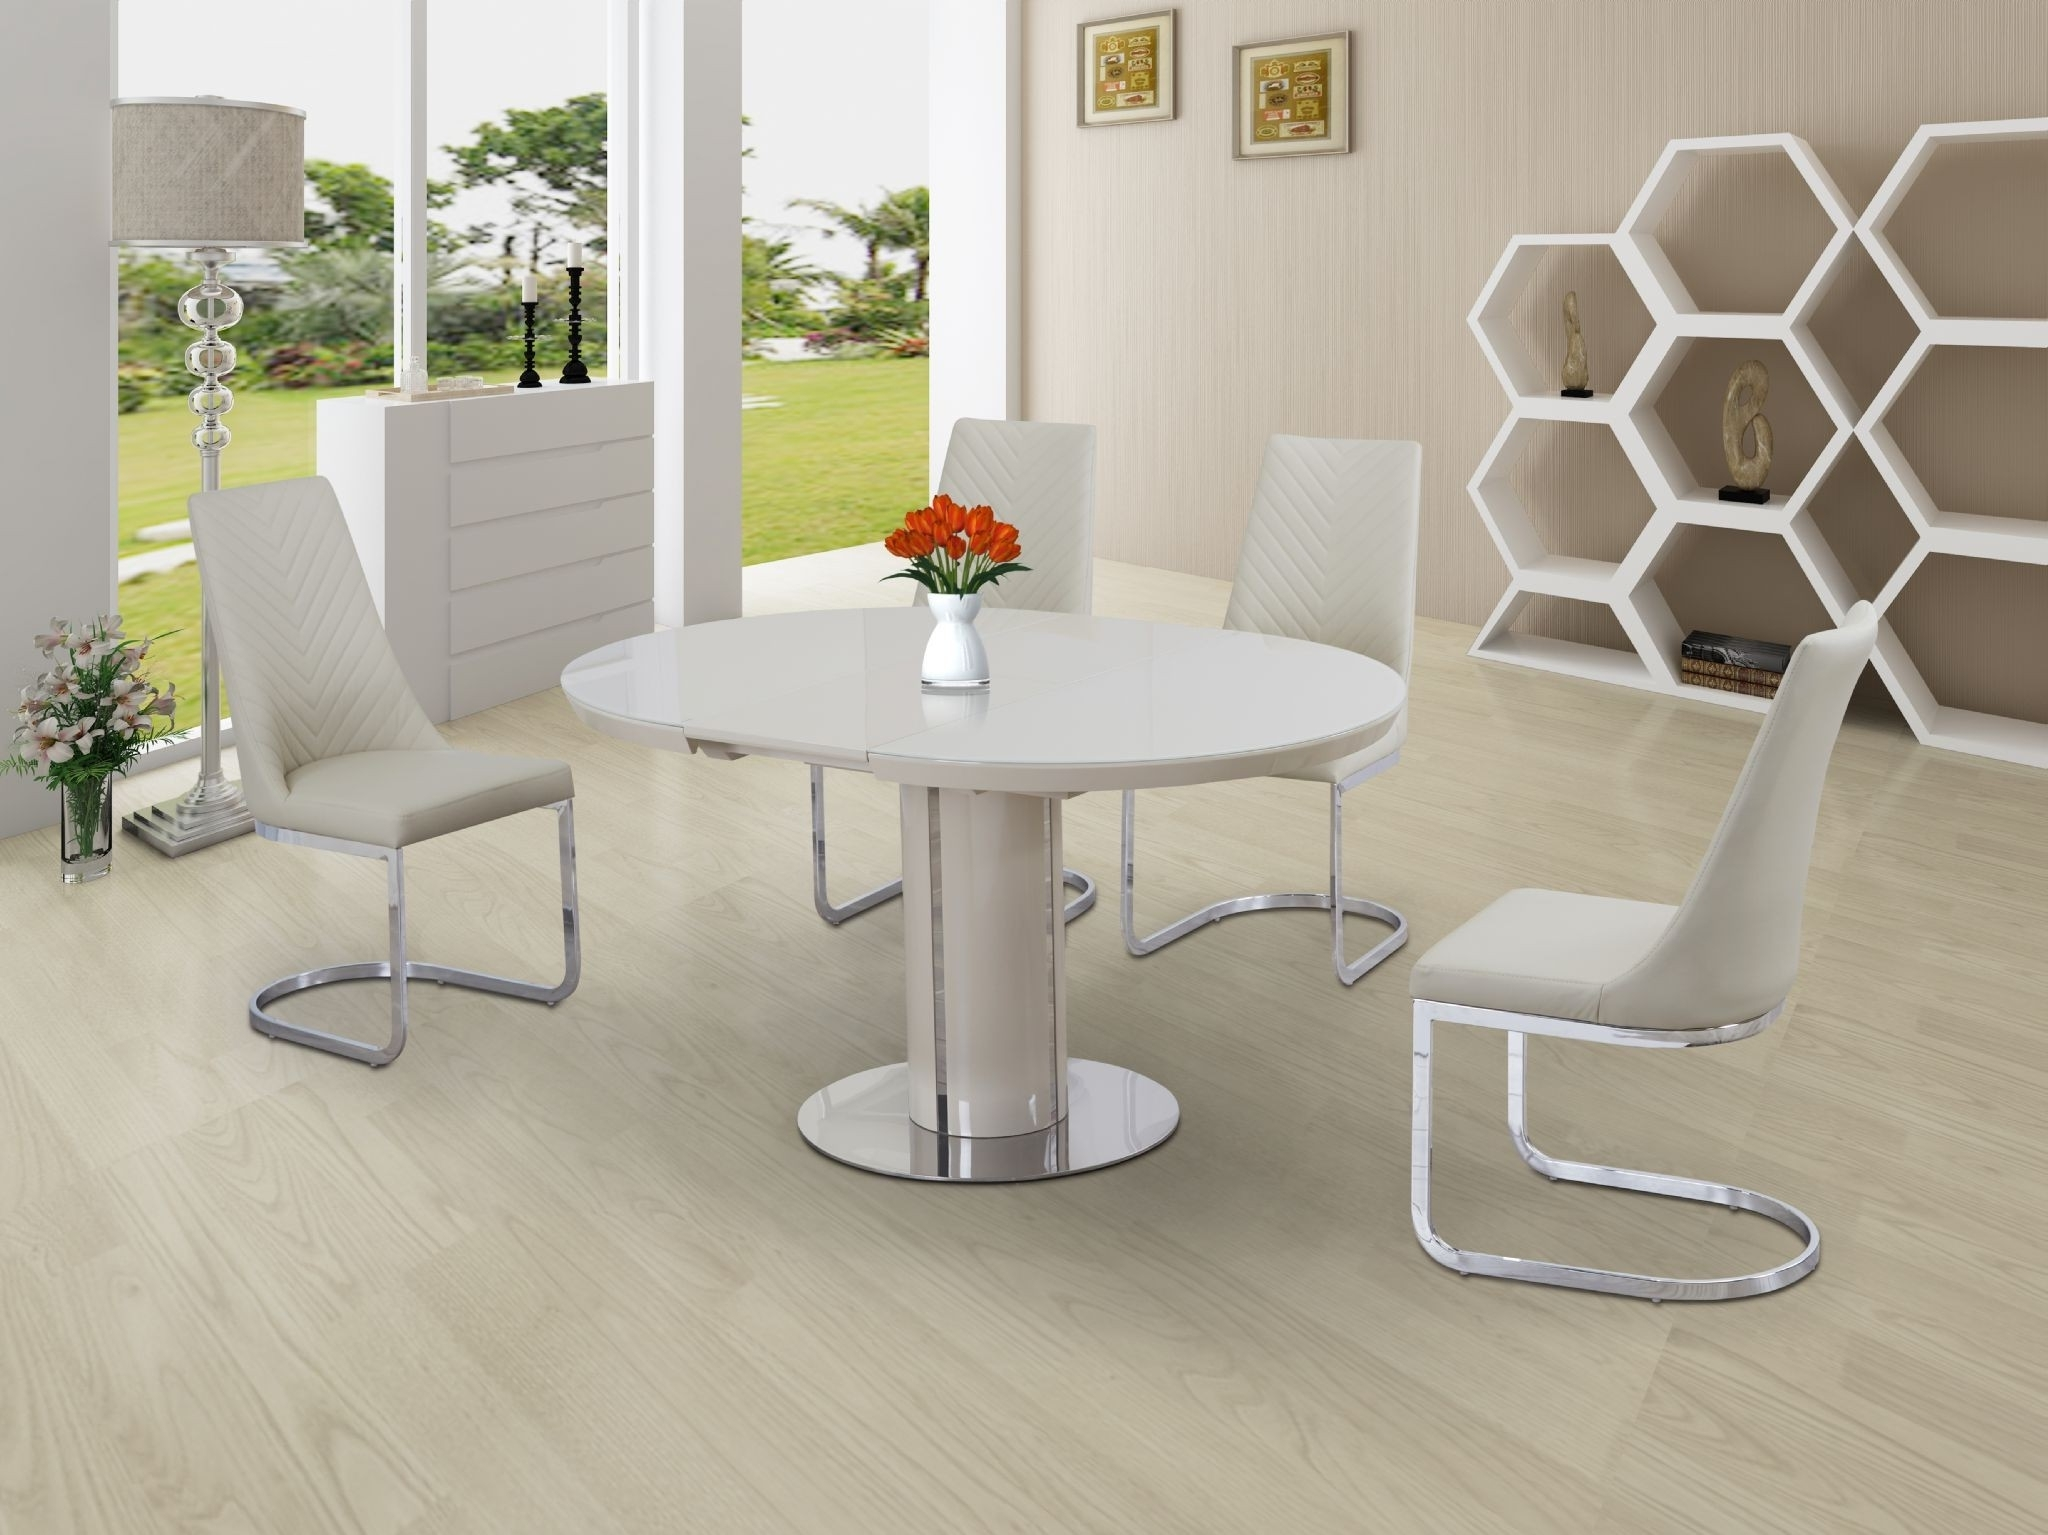 High Gloss Dining Tables And Chairs inside Popular Buy Annular Cream High Gloss Extending Dining Table